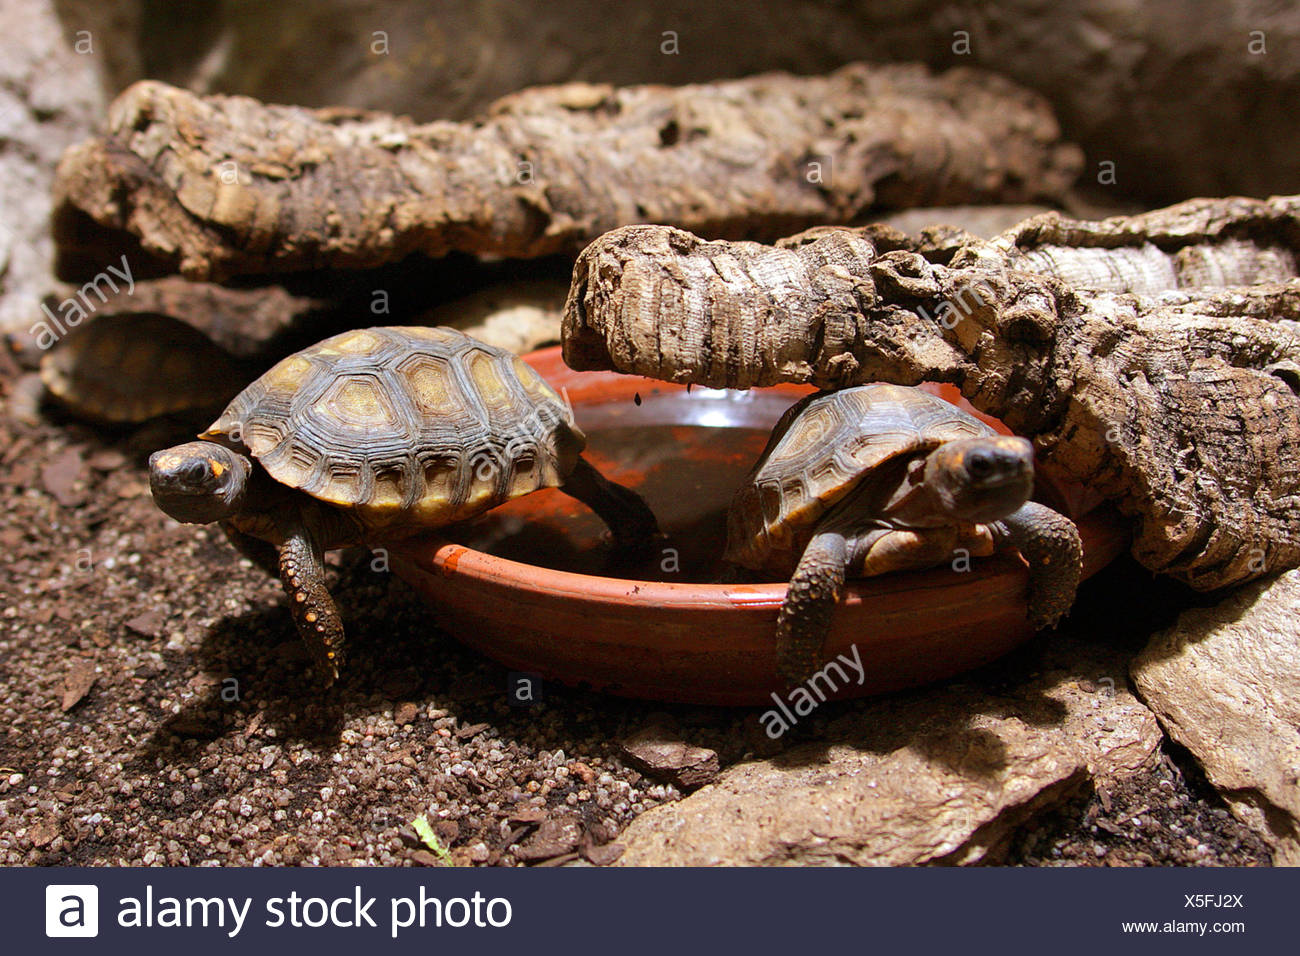 two turtles in a terrarium - Stock Image